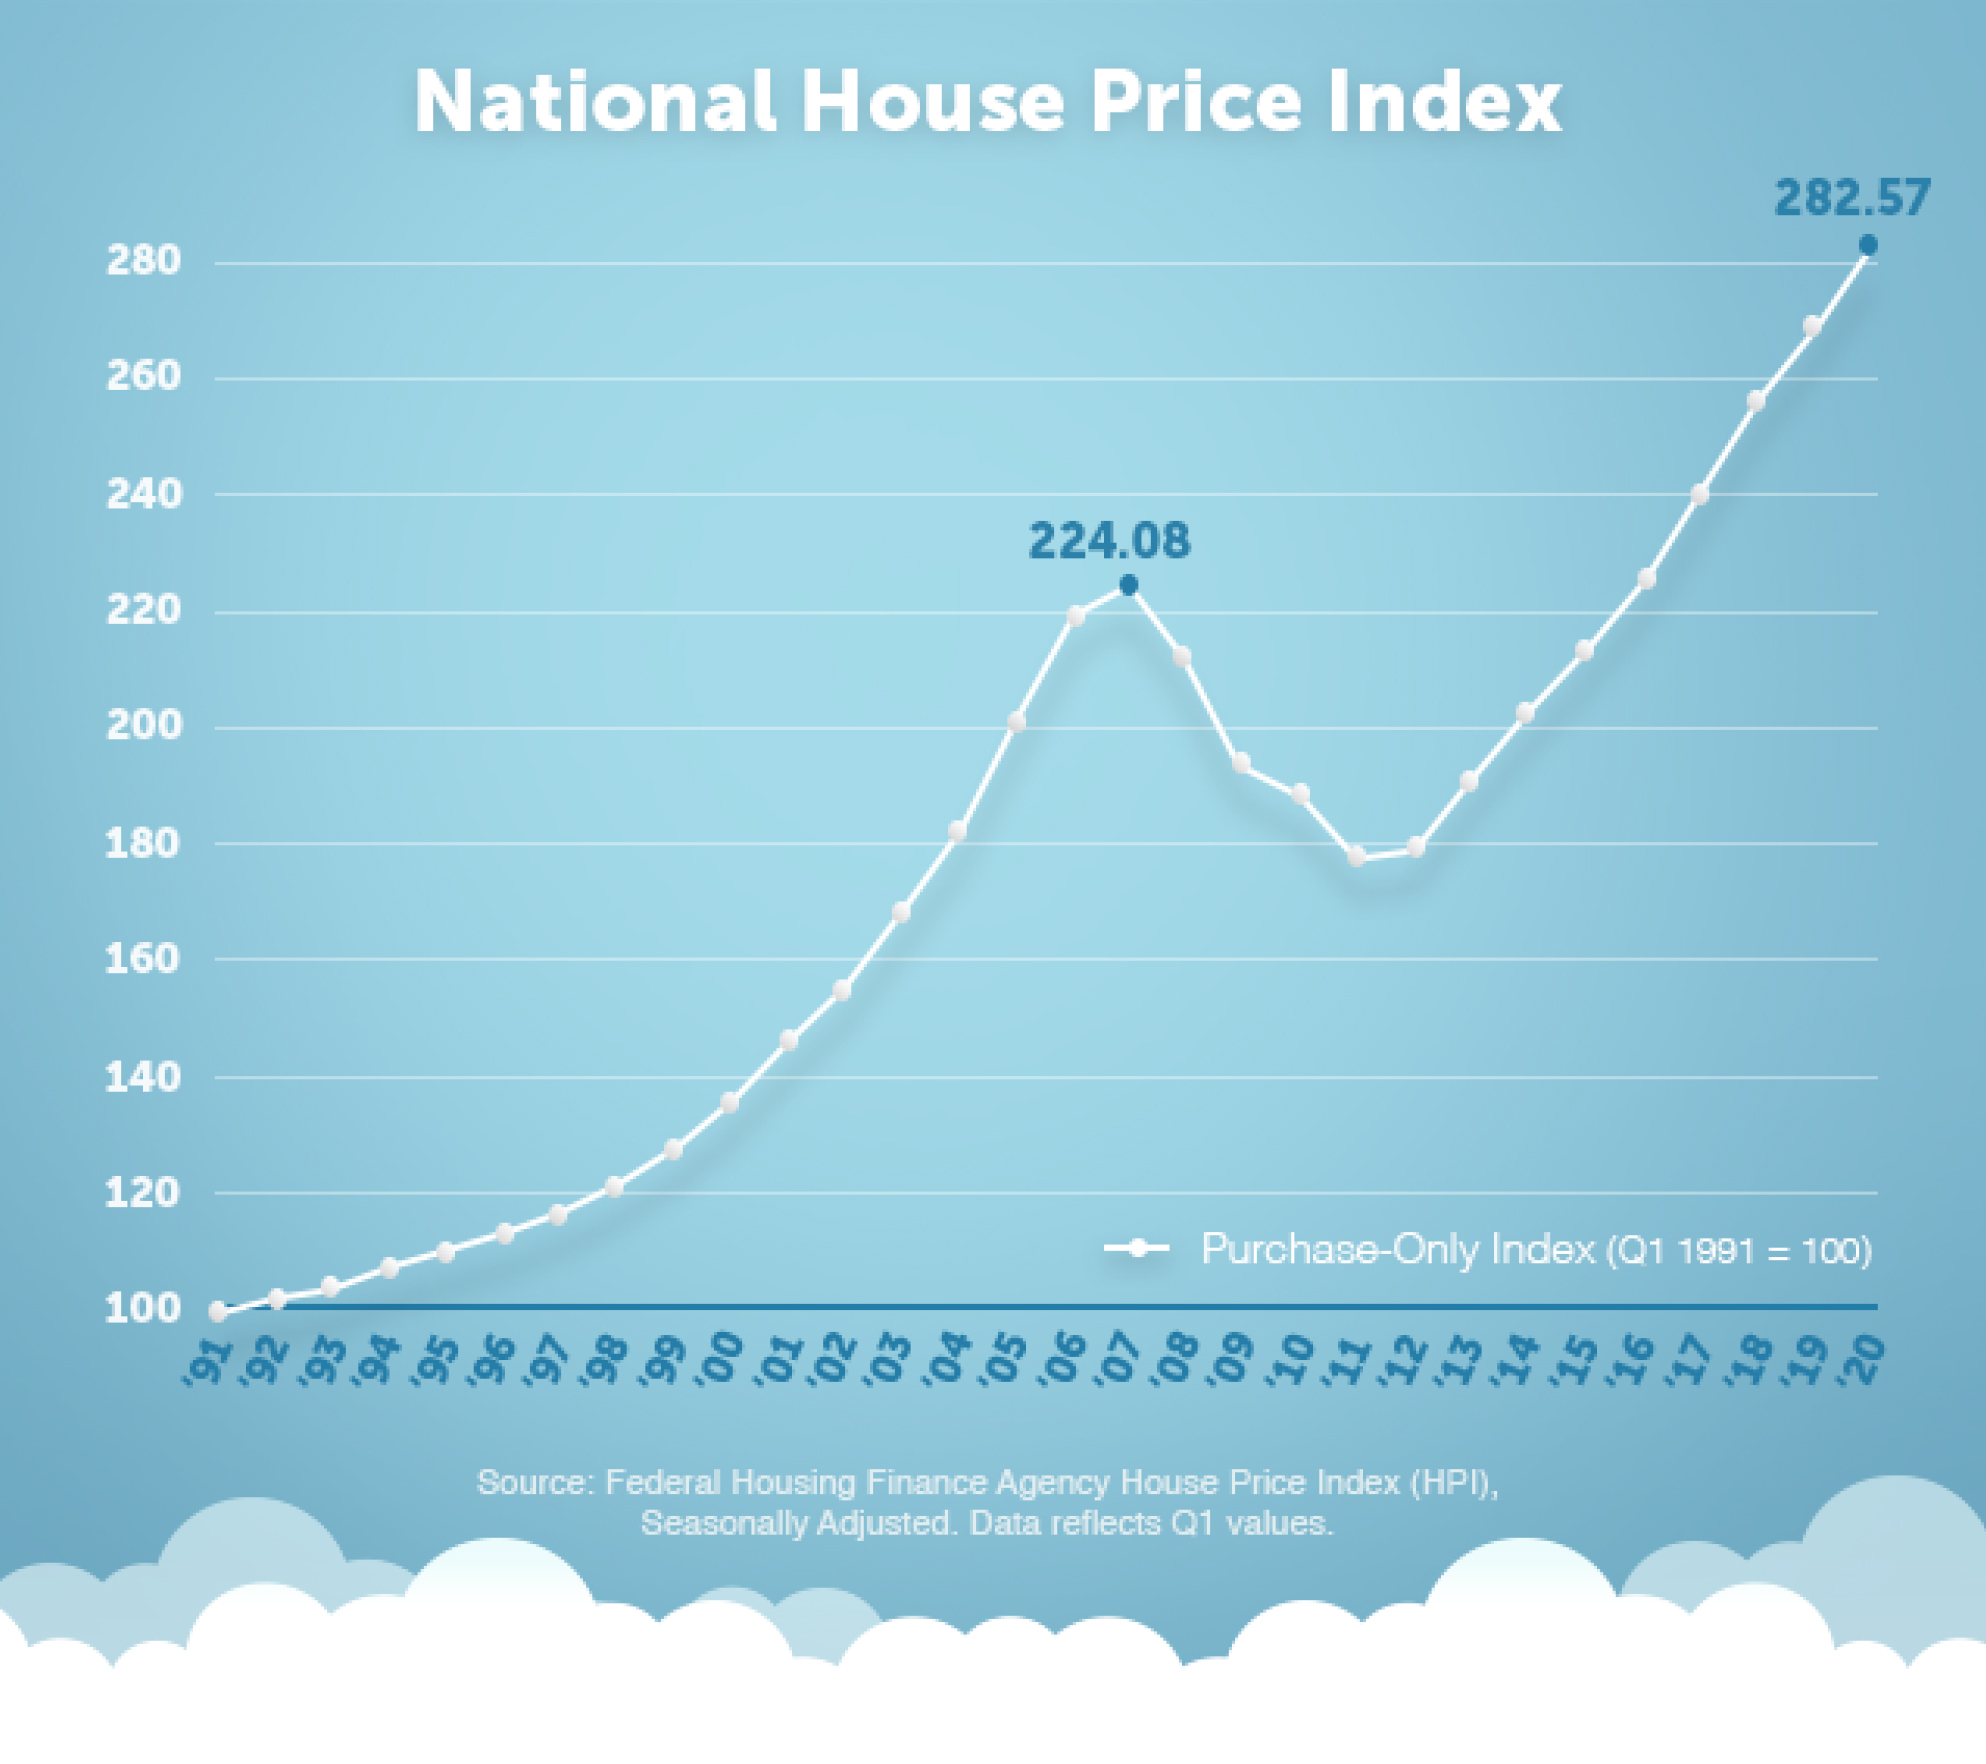 The chart below shows how the house price index has generally risen over the past 29 years.